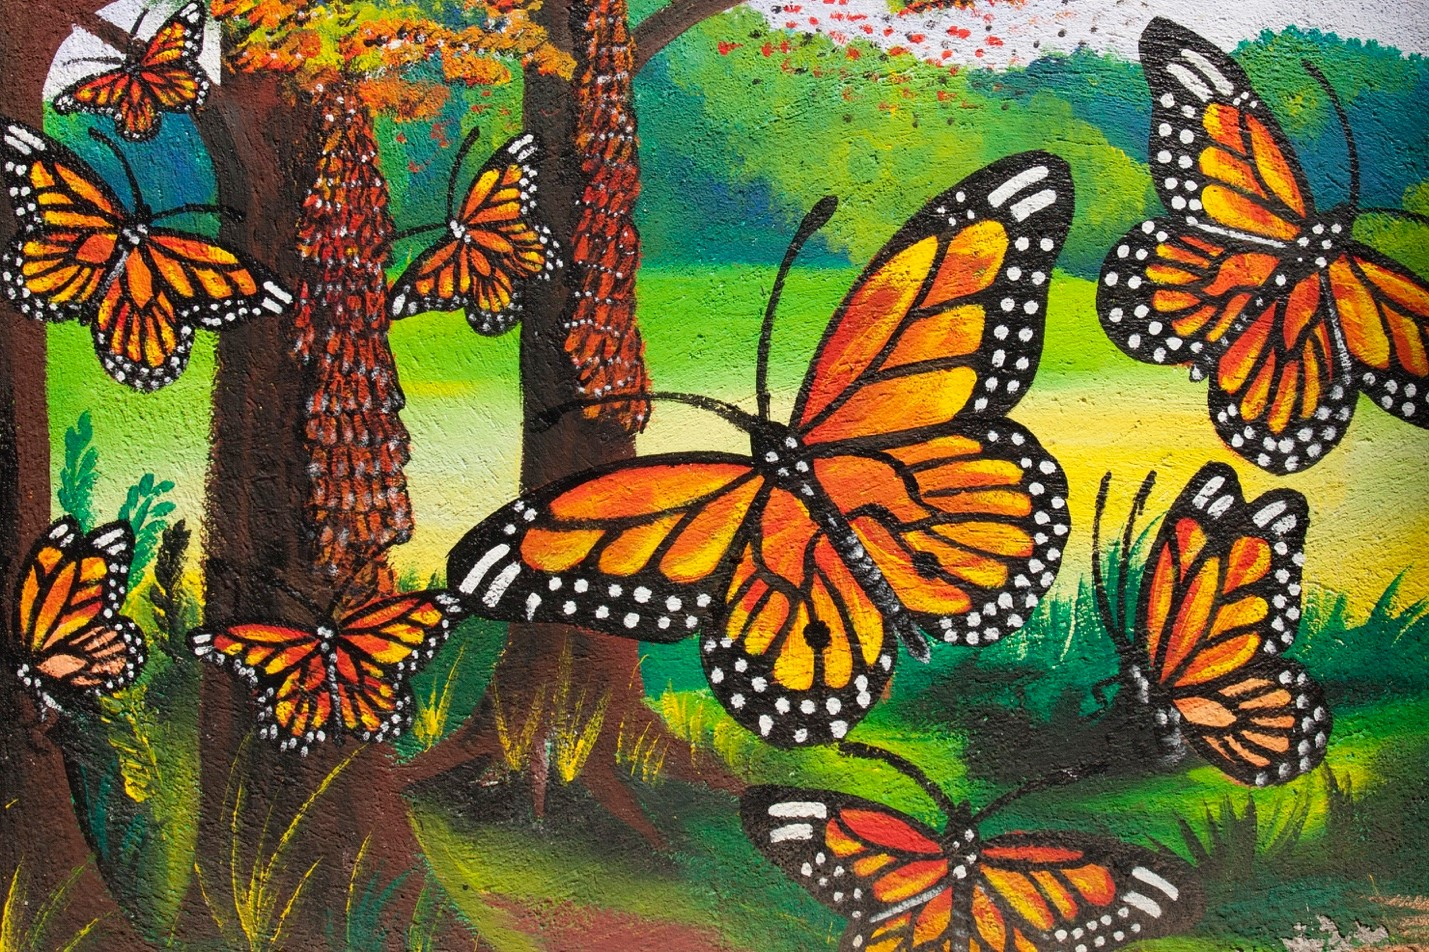 10 inspirational photos from the monarch butterfly migration